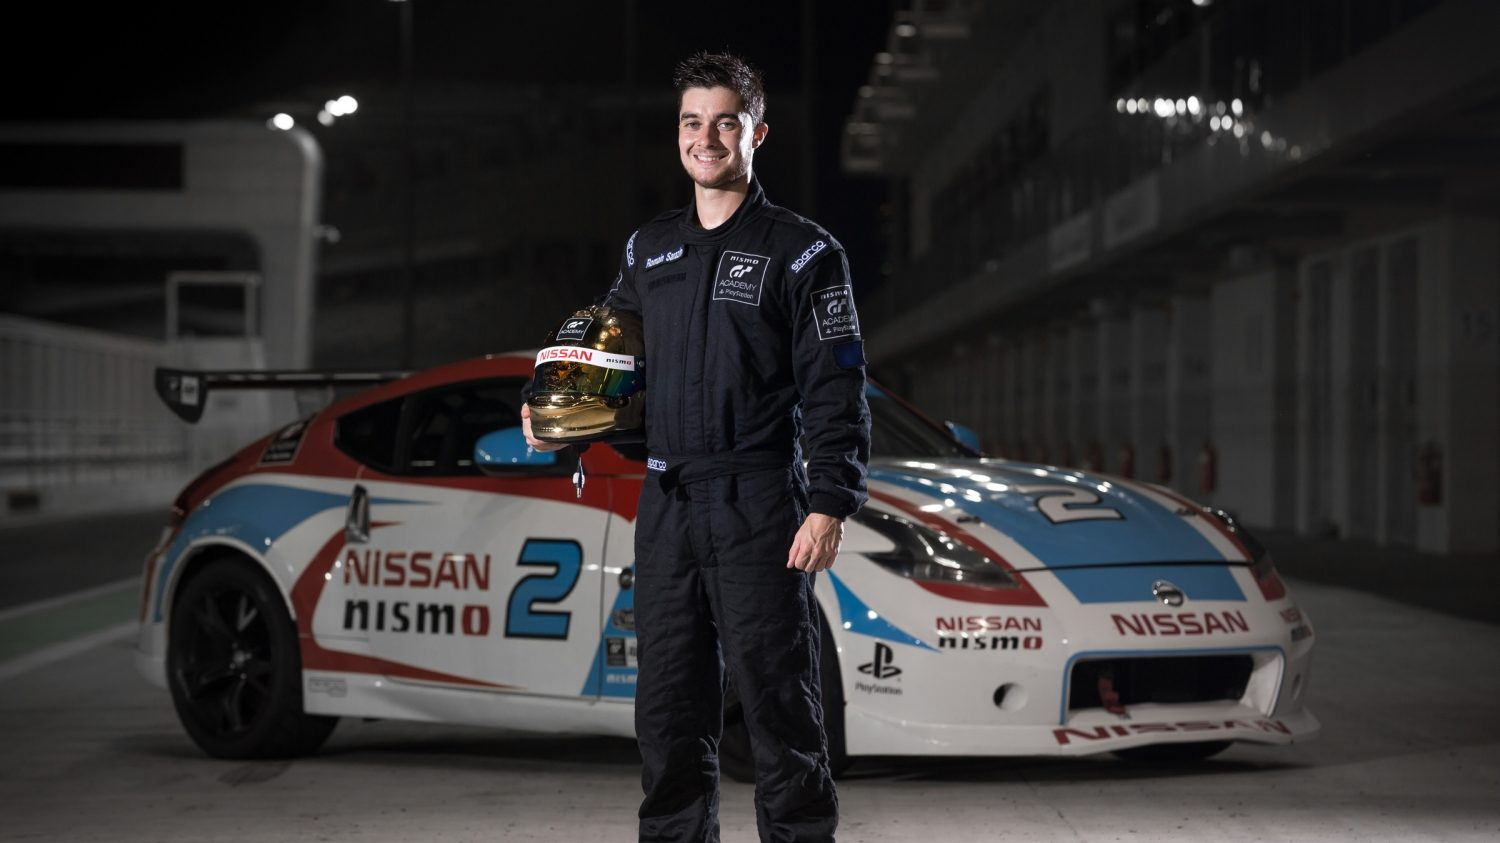 Romain Sarazin, winner of the 2015 European GT Academy